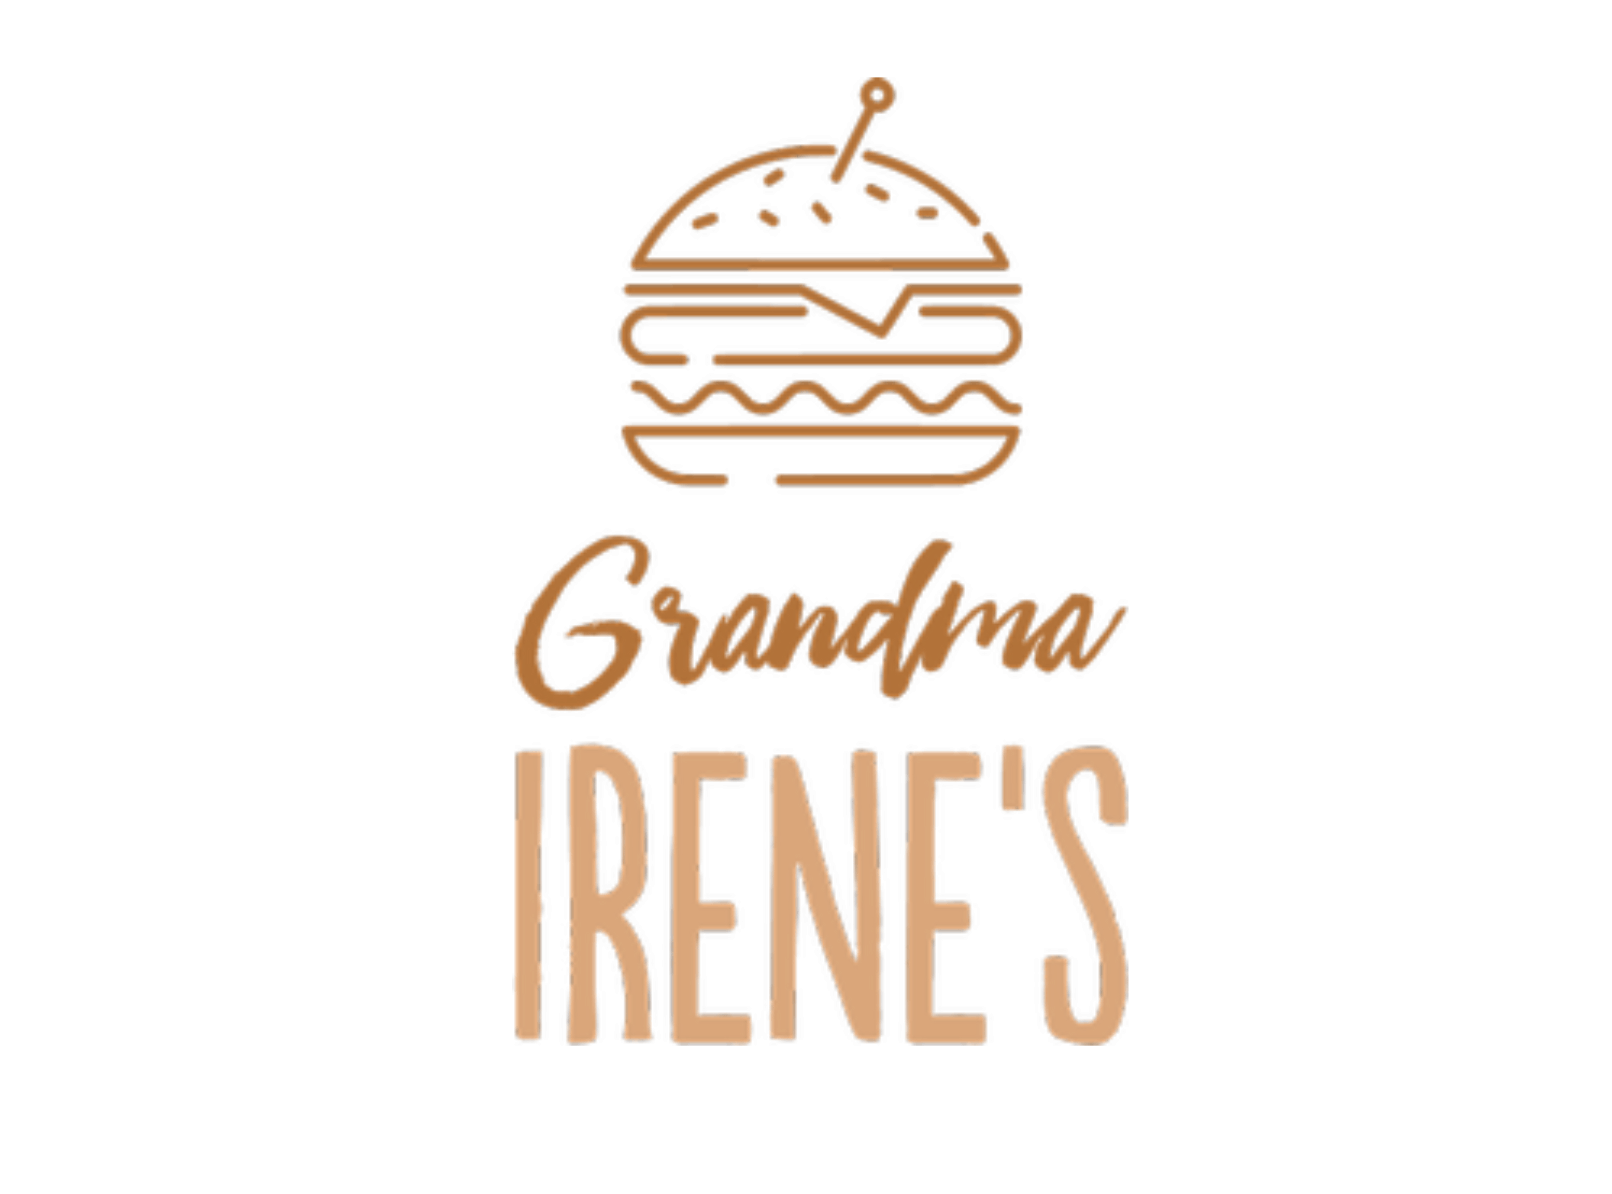 Vintage logo made with Tailor Brands - Grandma Irene's